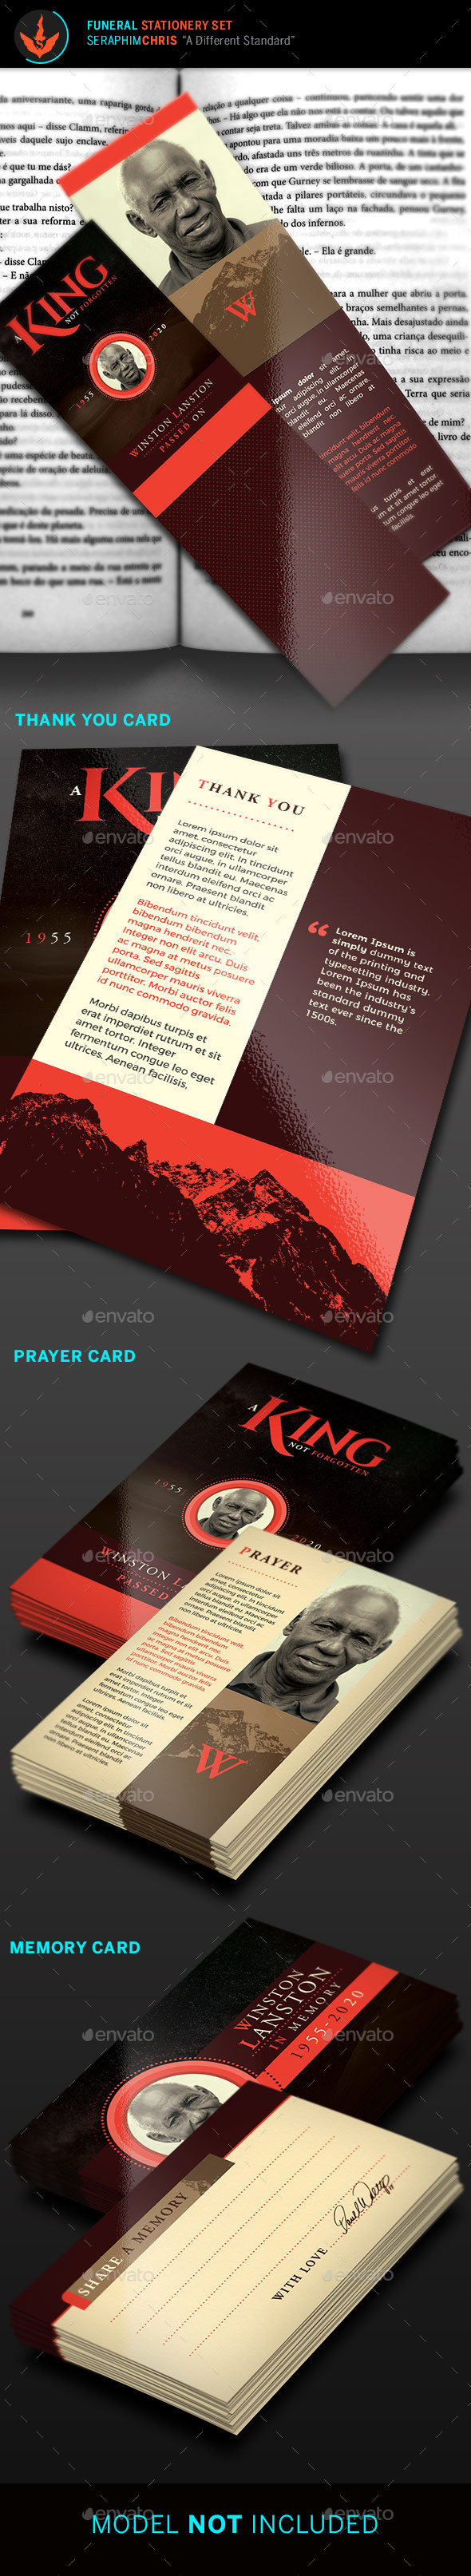 GraphicRiver King Funeral Stationary Set Template 21068716